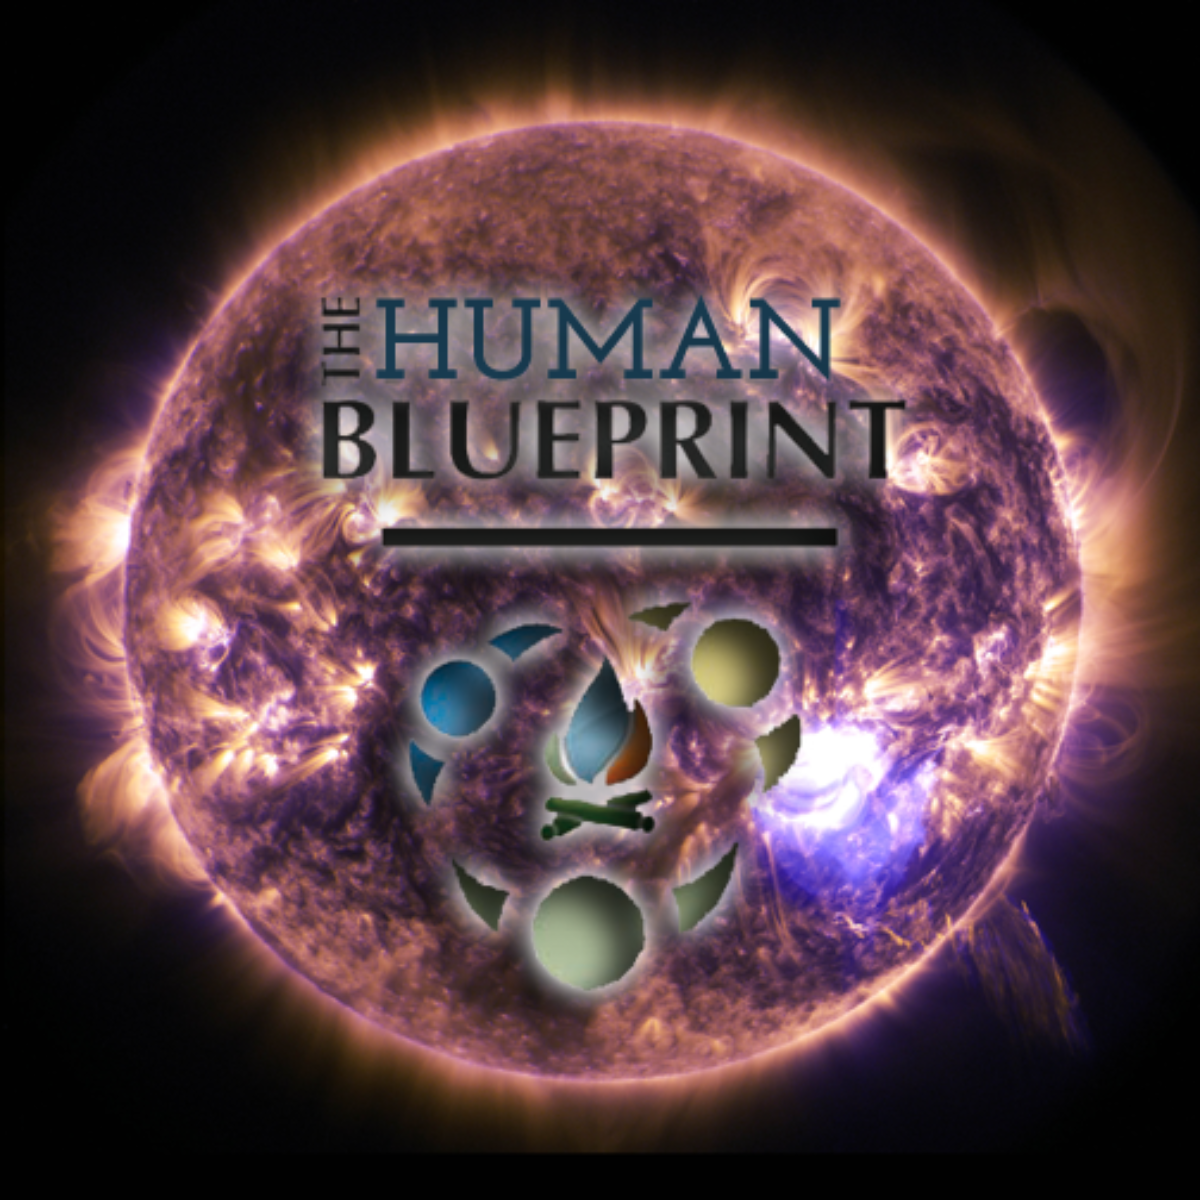 The Human Blueprint | Animated Saga